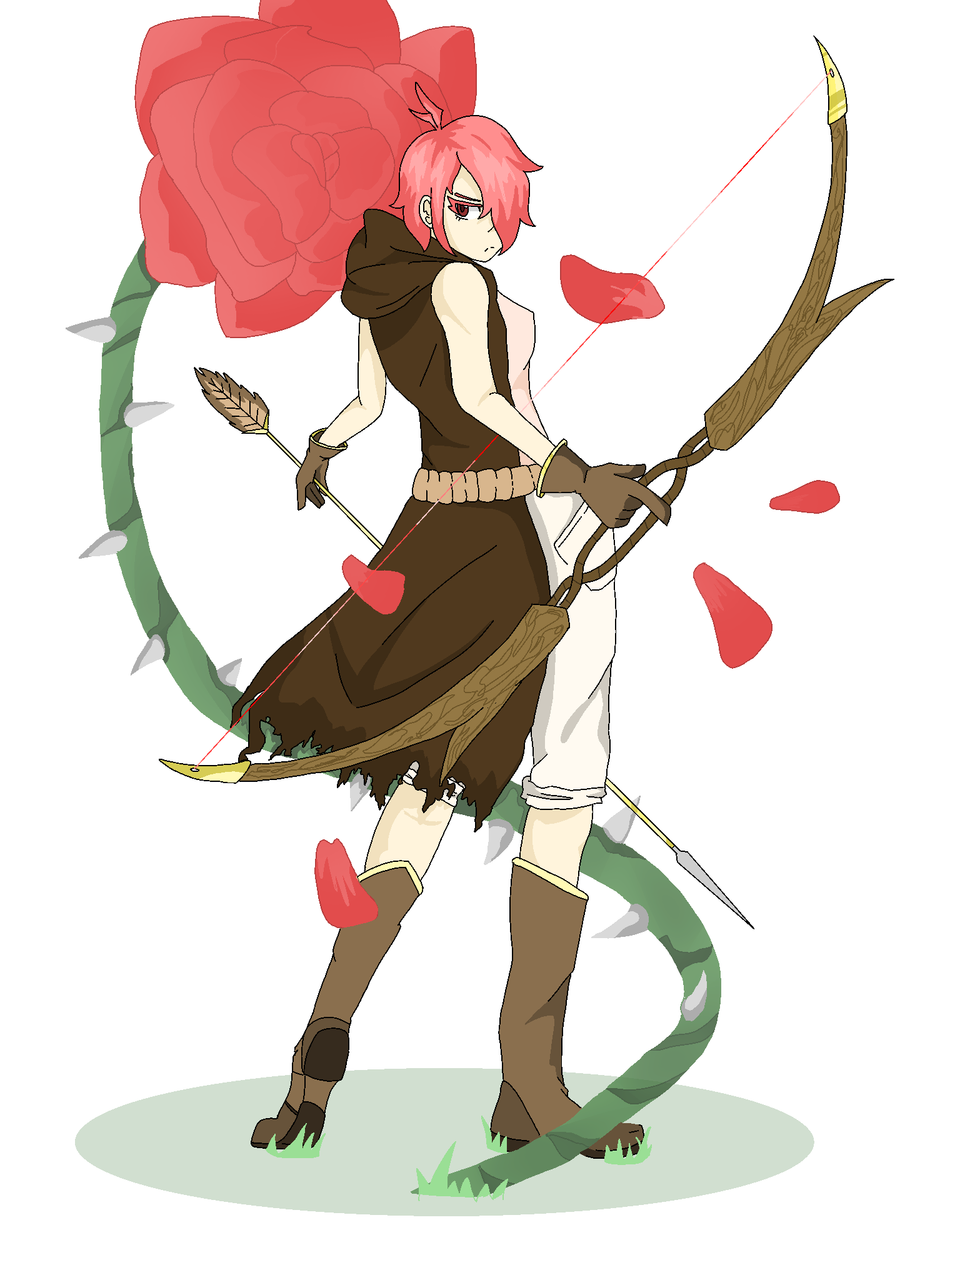 Rosary the archer